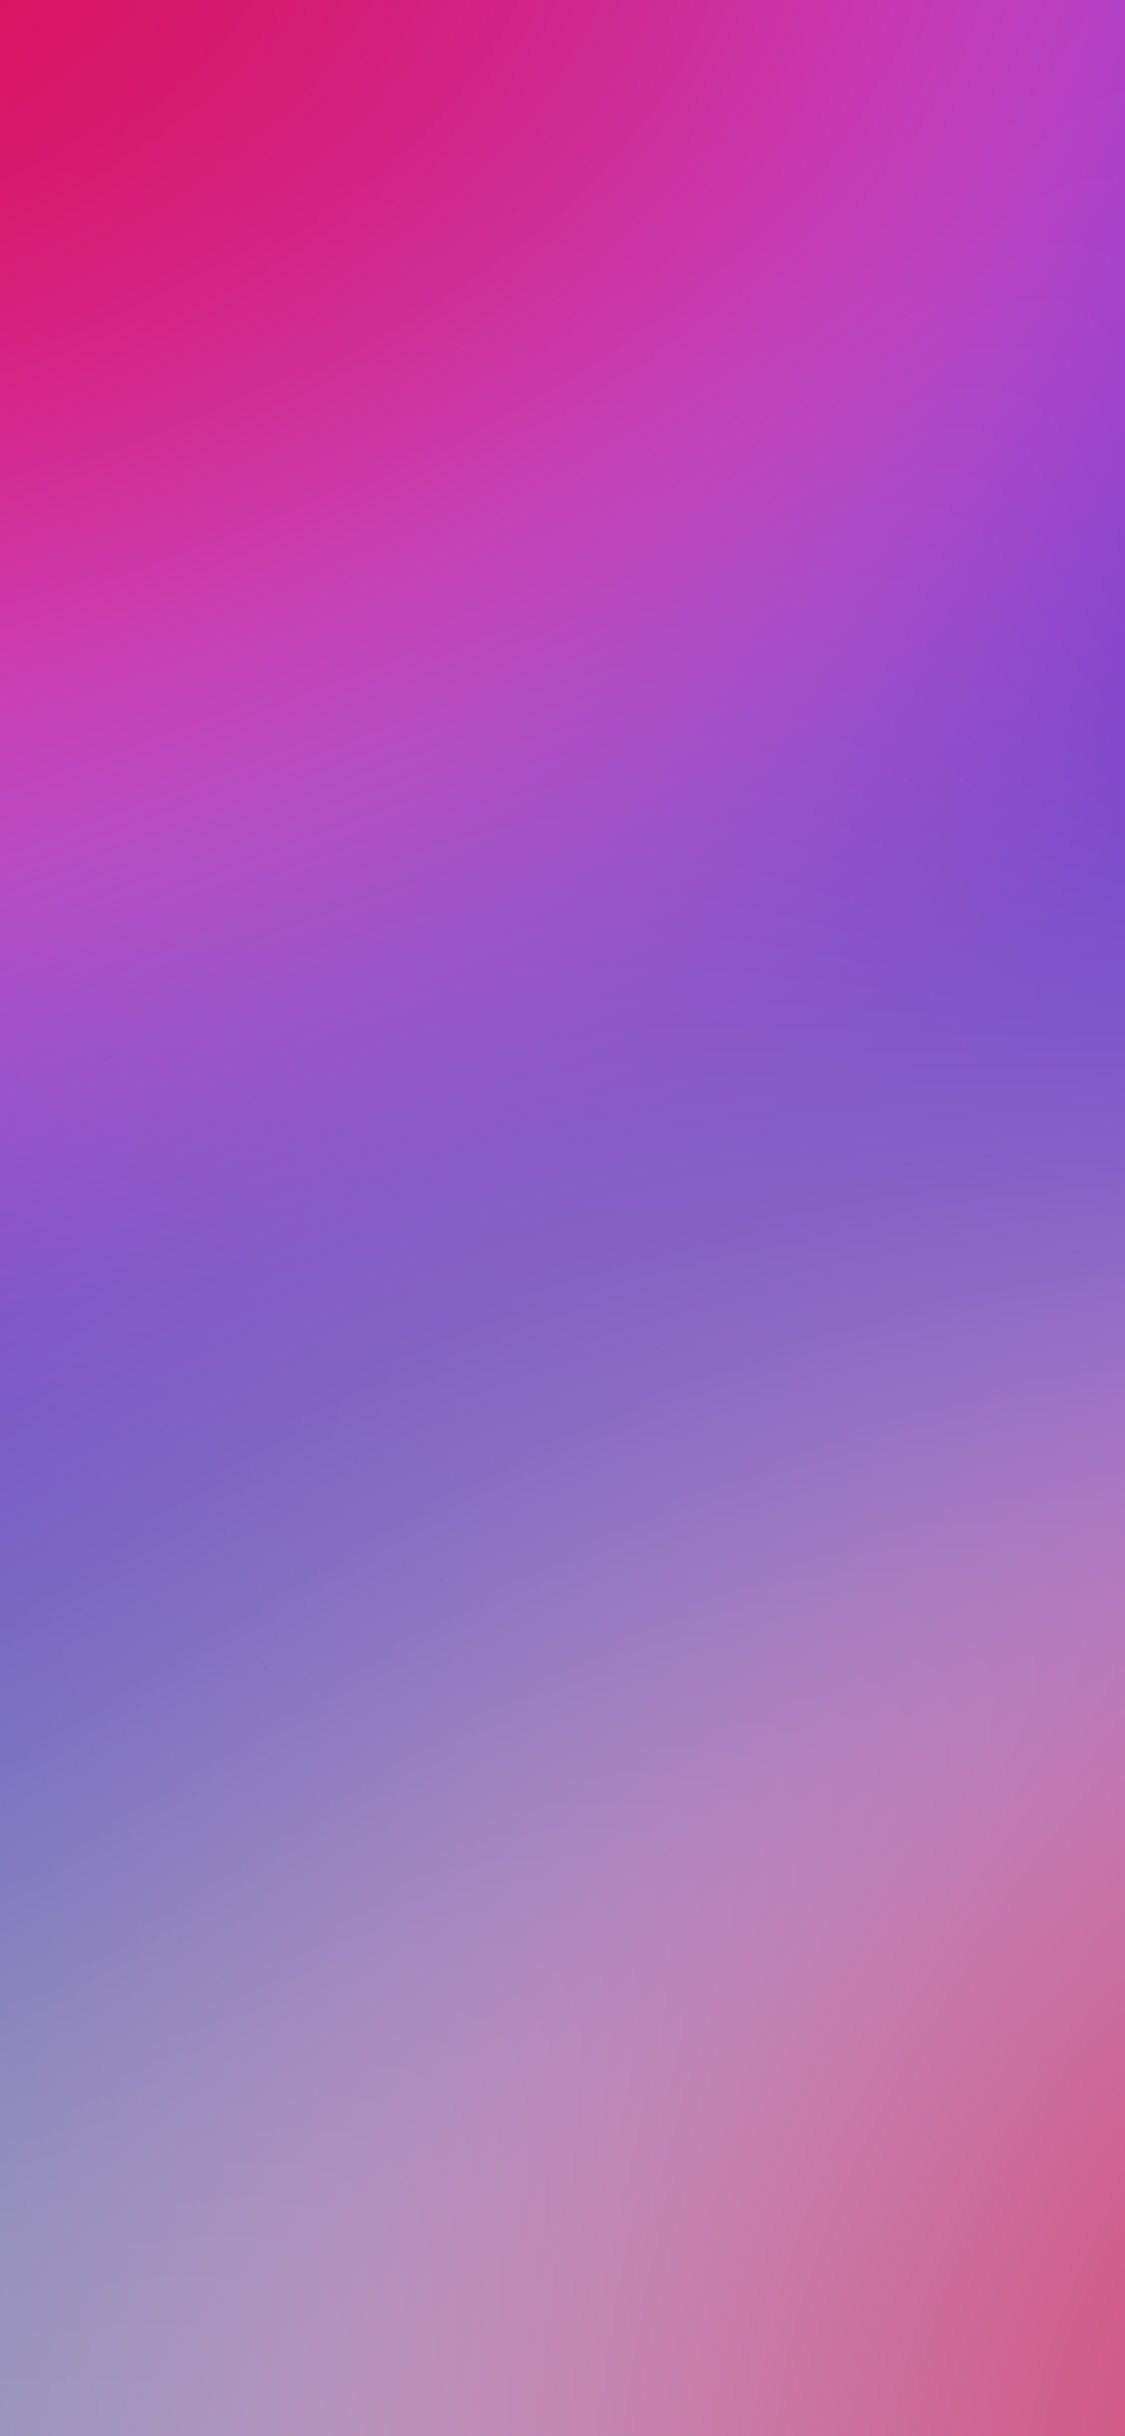 iPhonexpapers.com-Apple-iPhone-wallpaper-sn32-red-purple-blur-gradation